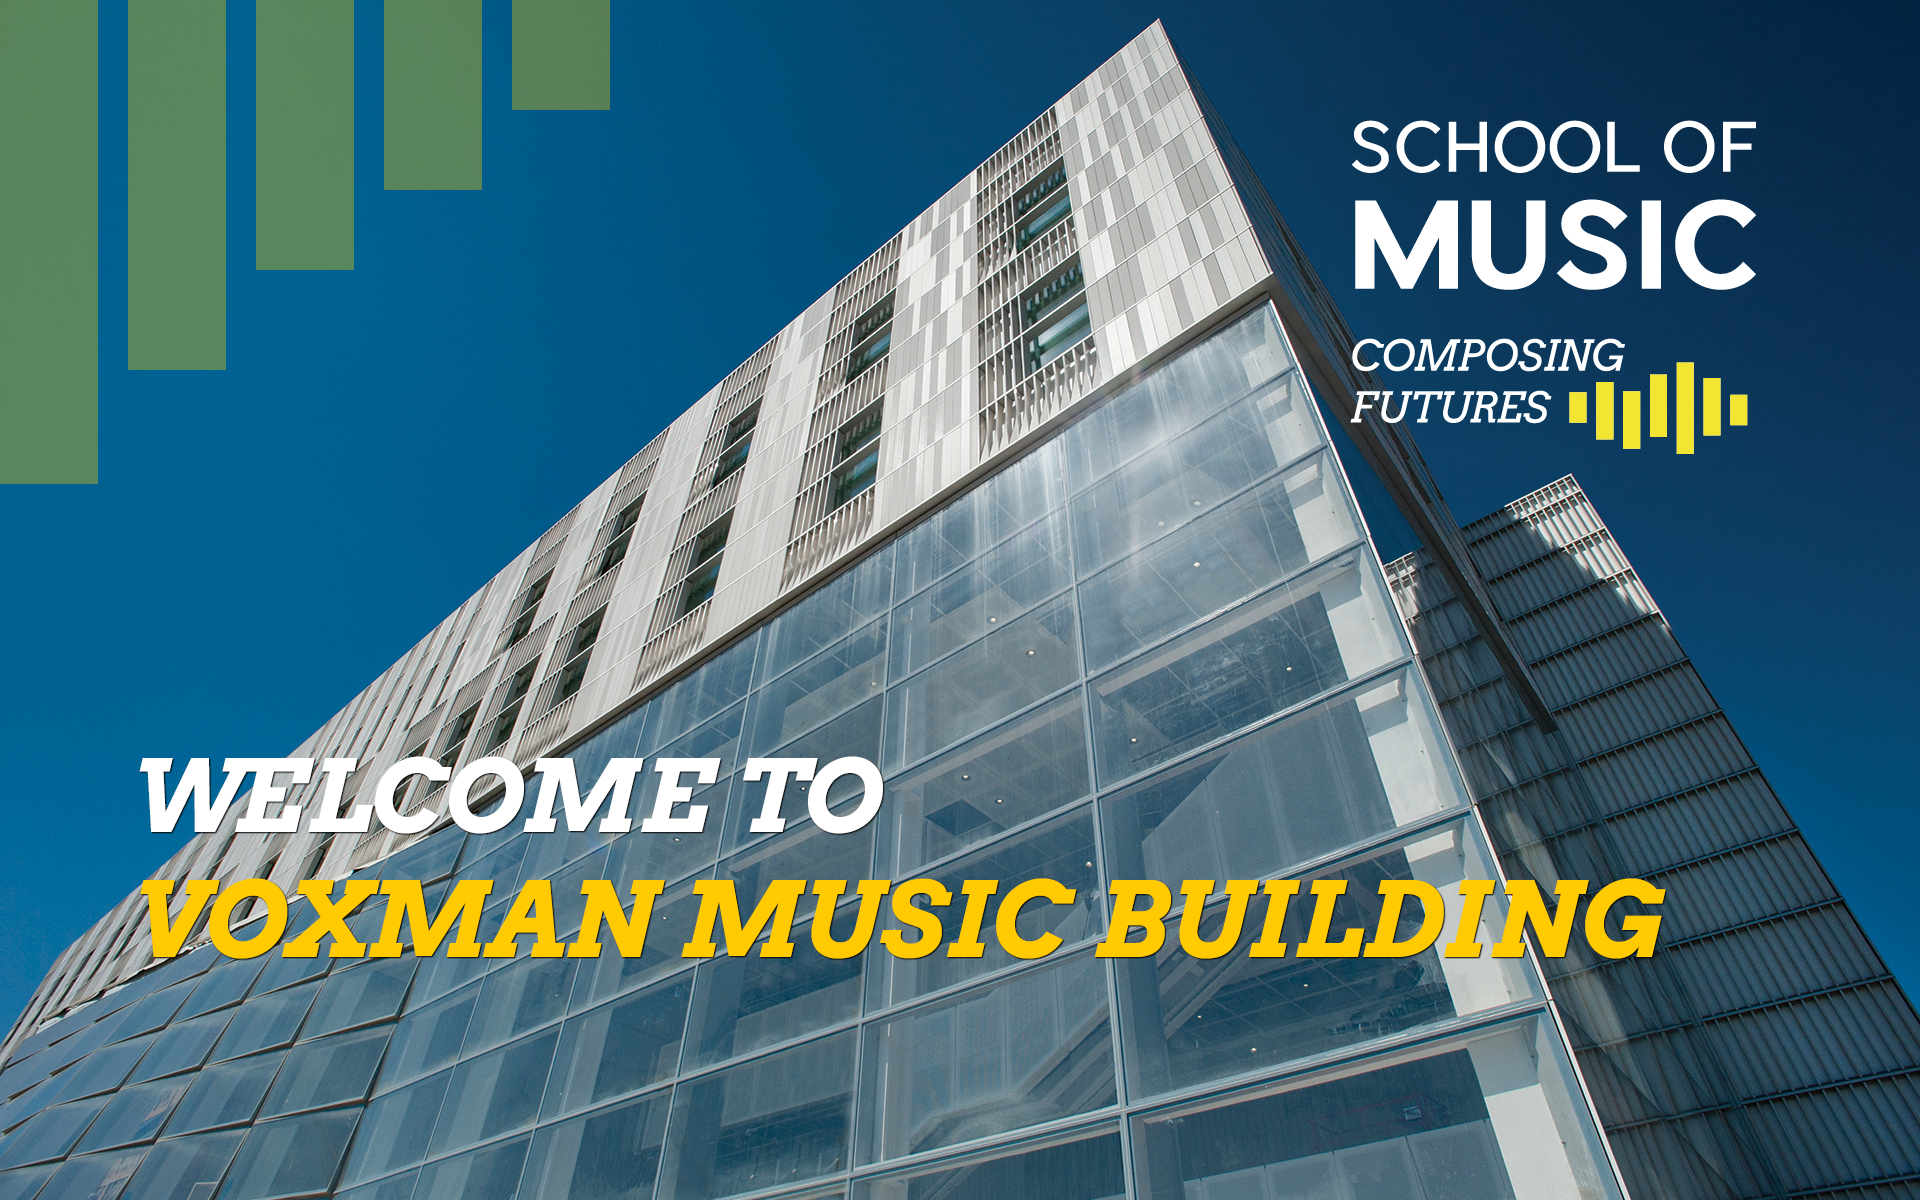 Welcome to Voxman Music Building